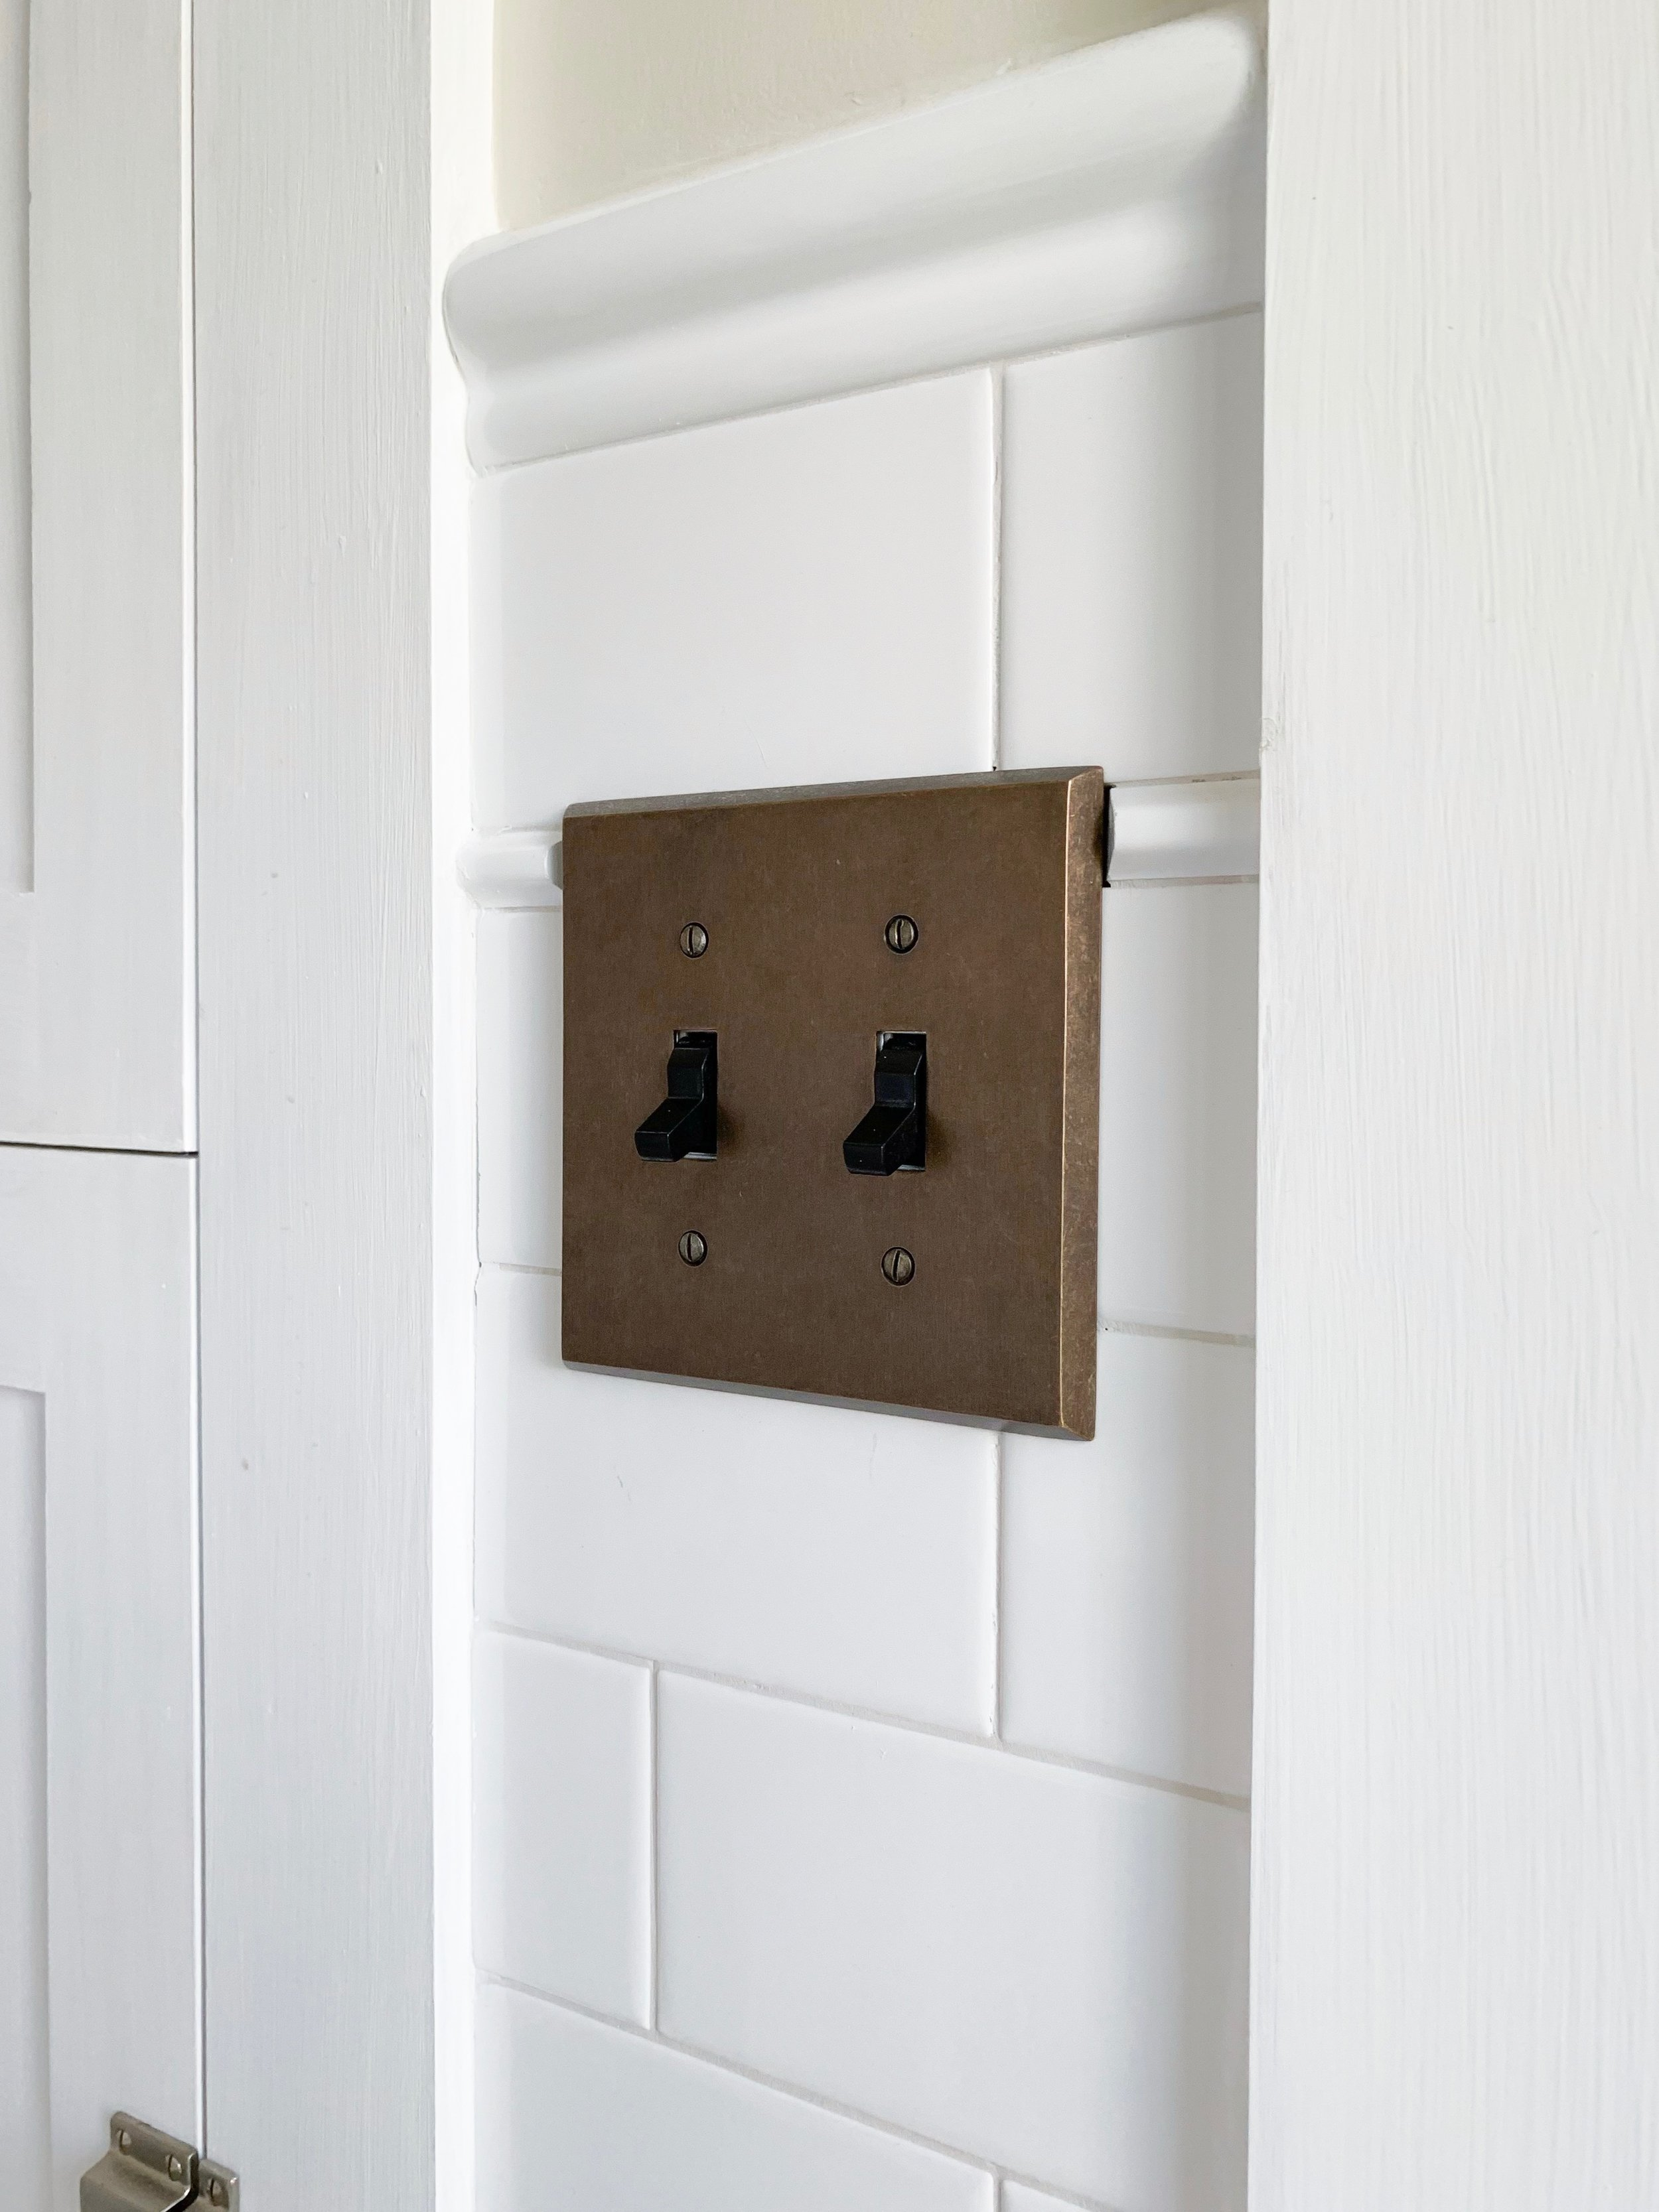 Light Switch Covers  |  Outlet Cover